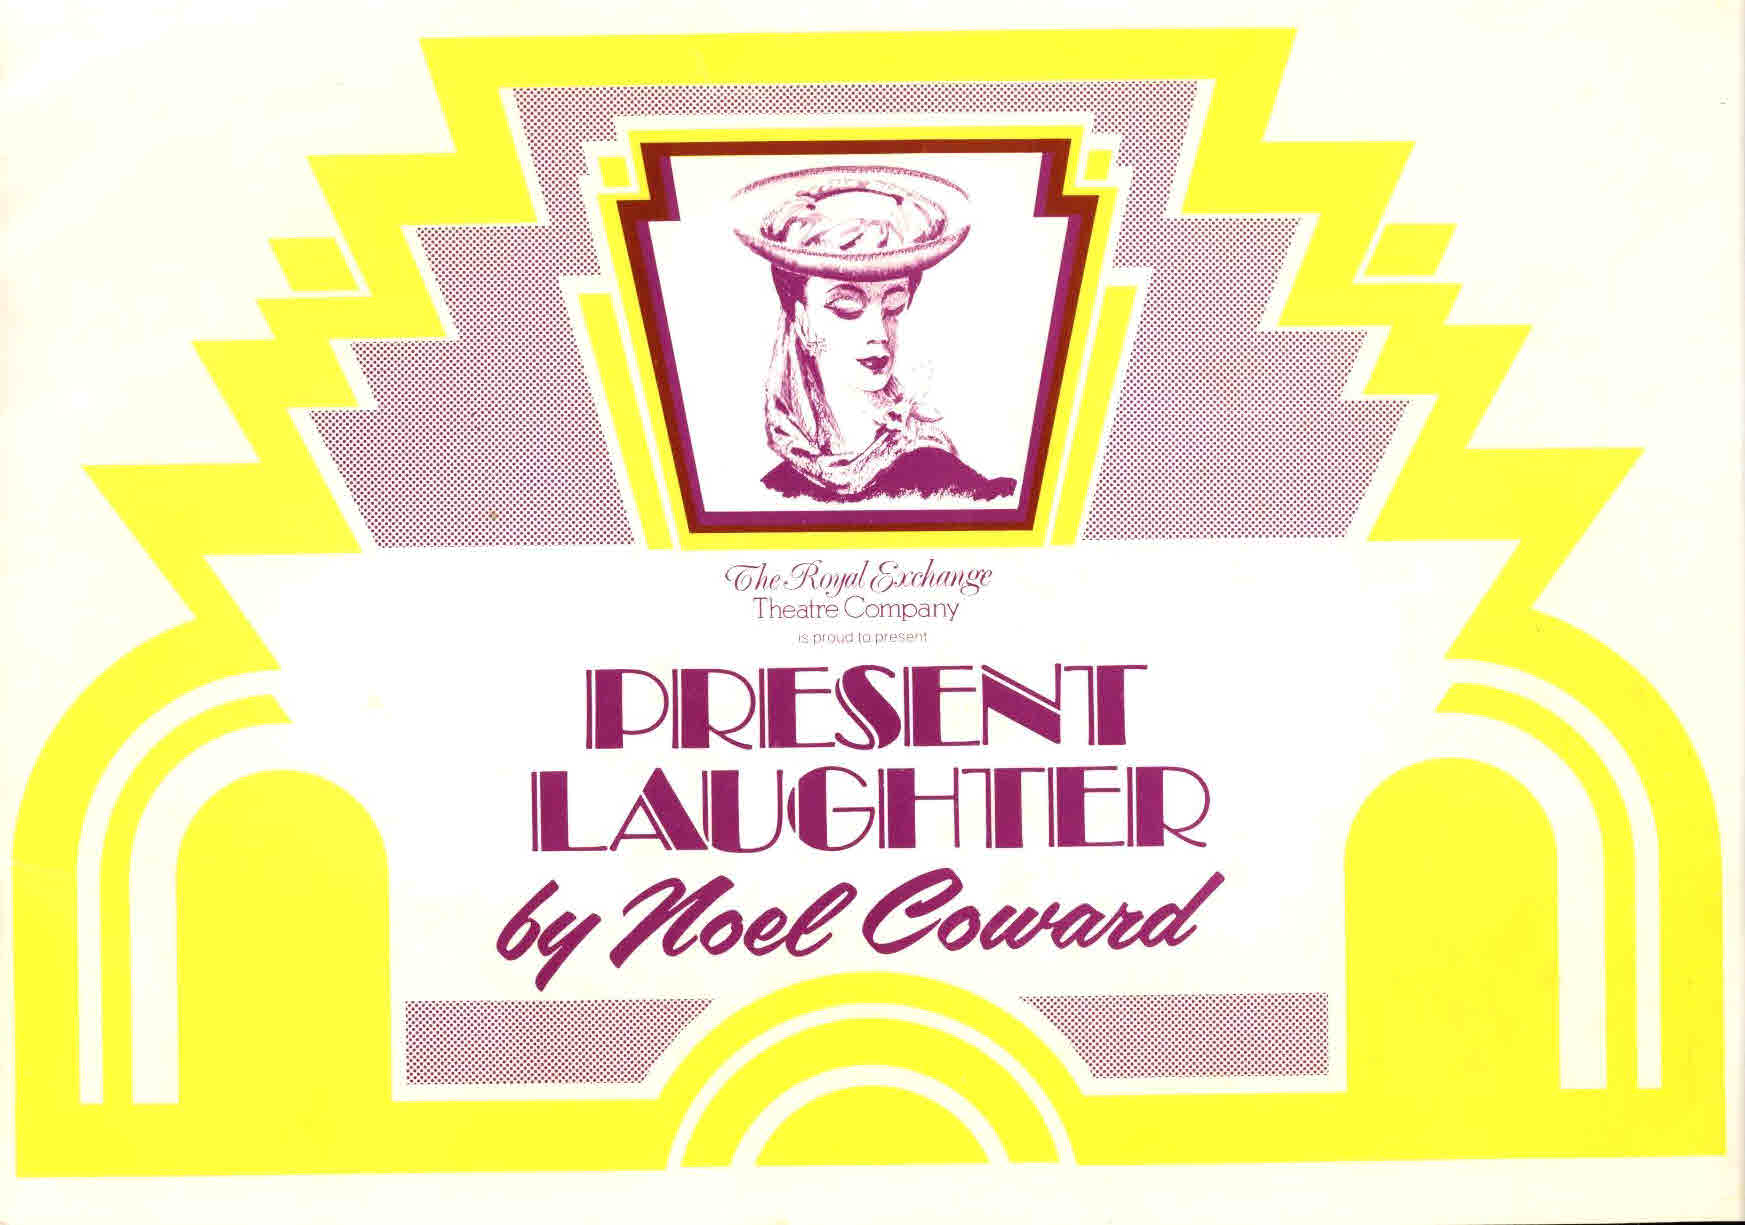 1977 PRESENT LAUGHTER by Noel Coward Royal Exchange Theate programme 20 pages ref01-008 30cm x 21cm approx. This is a used item in good condition. Please read full description.